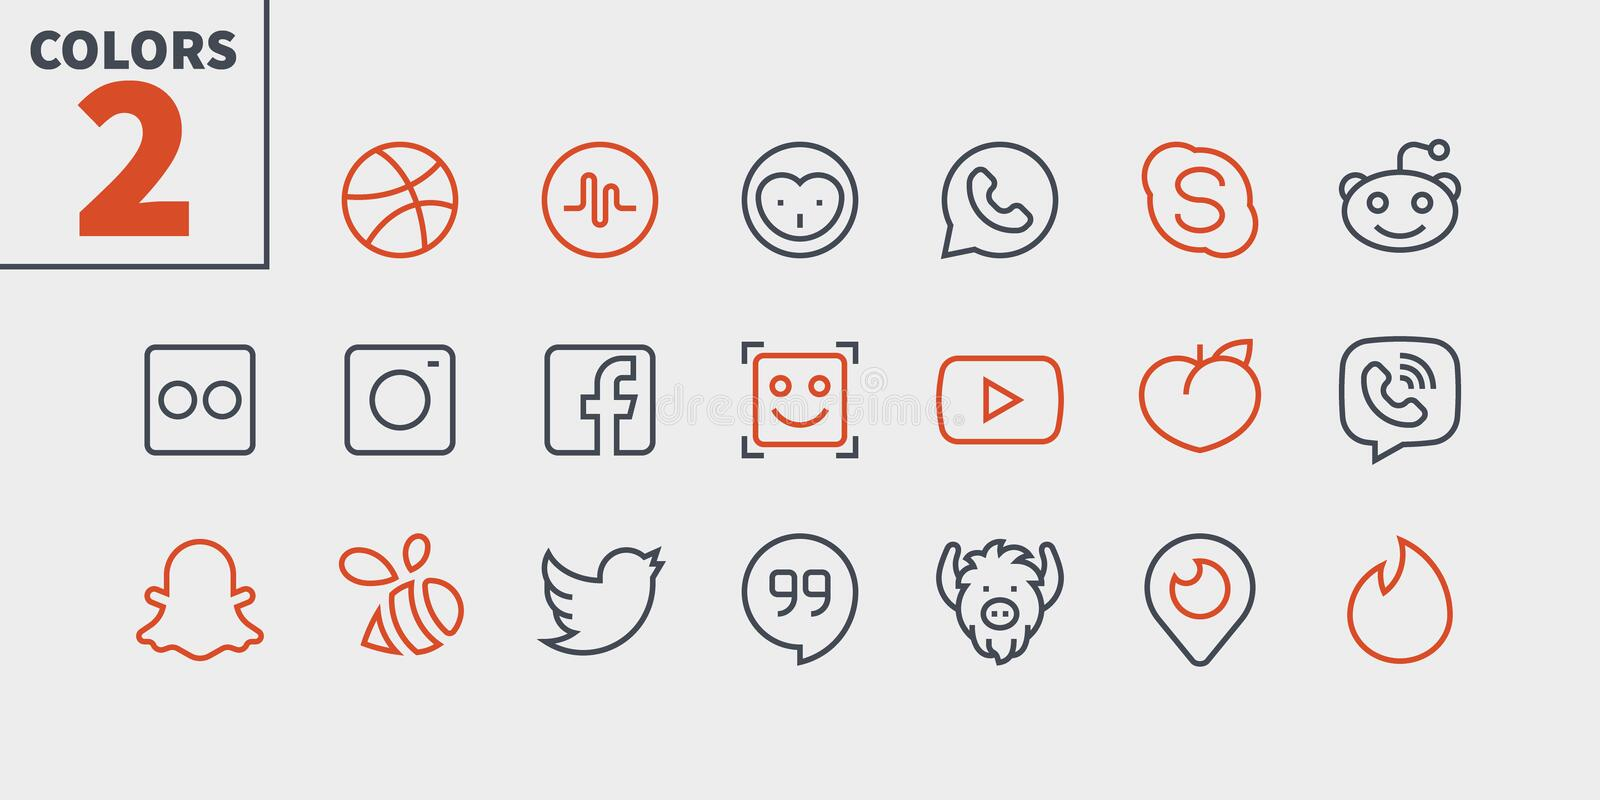 Social Media UI Pixel Perfect Well-crafted Vector Thin Line Icons 48x48 Ready for 24x24 Grid for Web Graphics and Apps. With Editable Stroke. Simple Minimal royalty free illustration